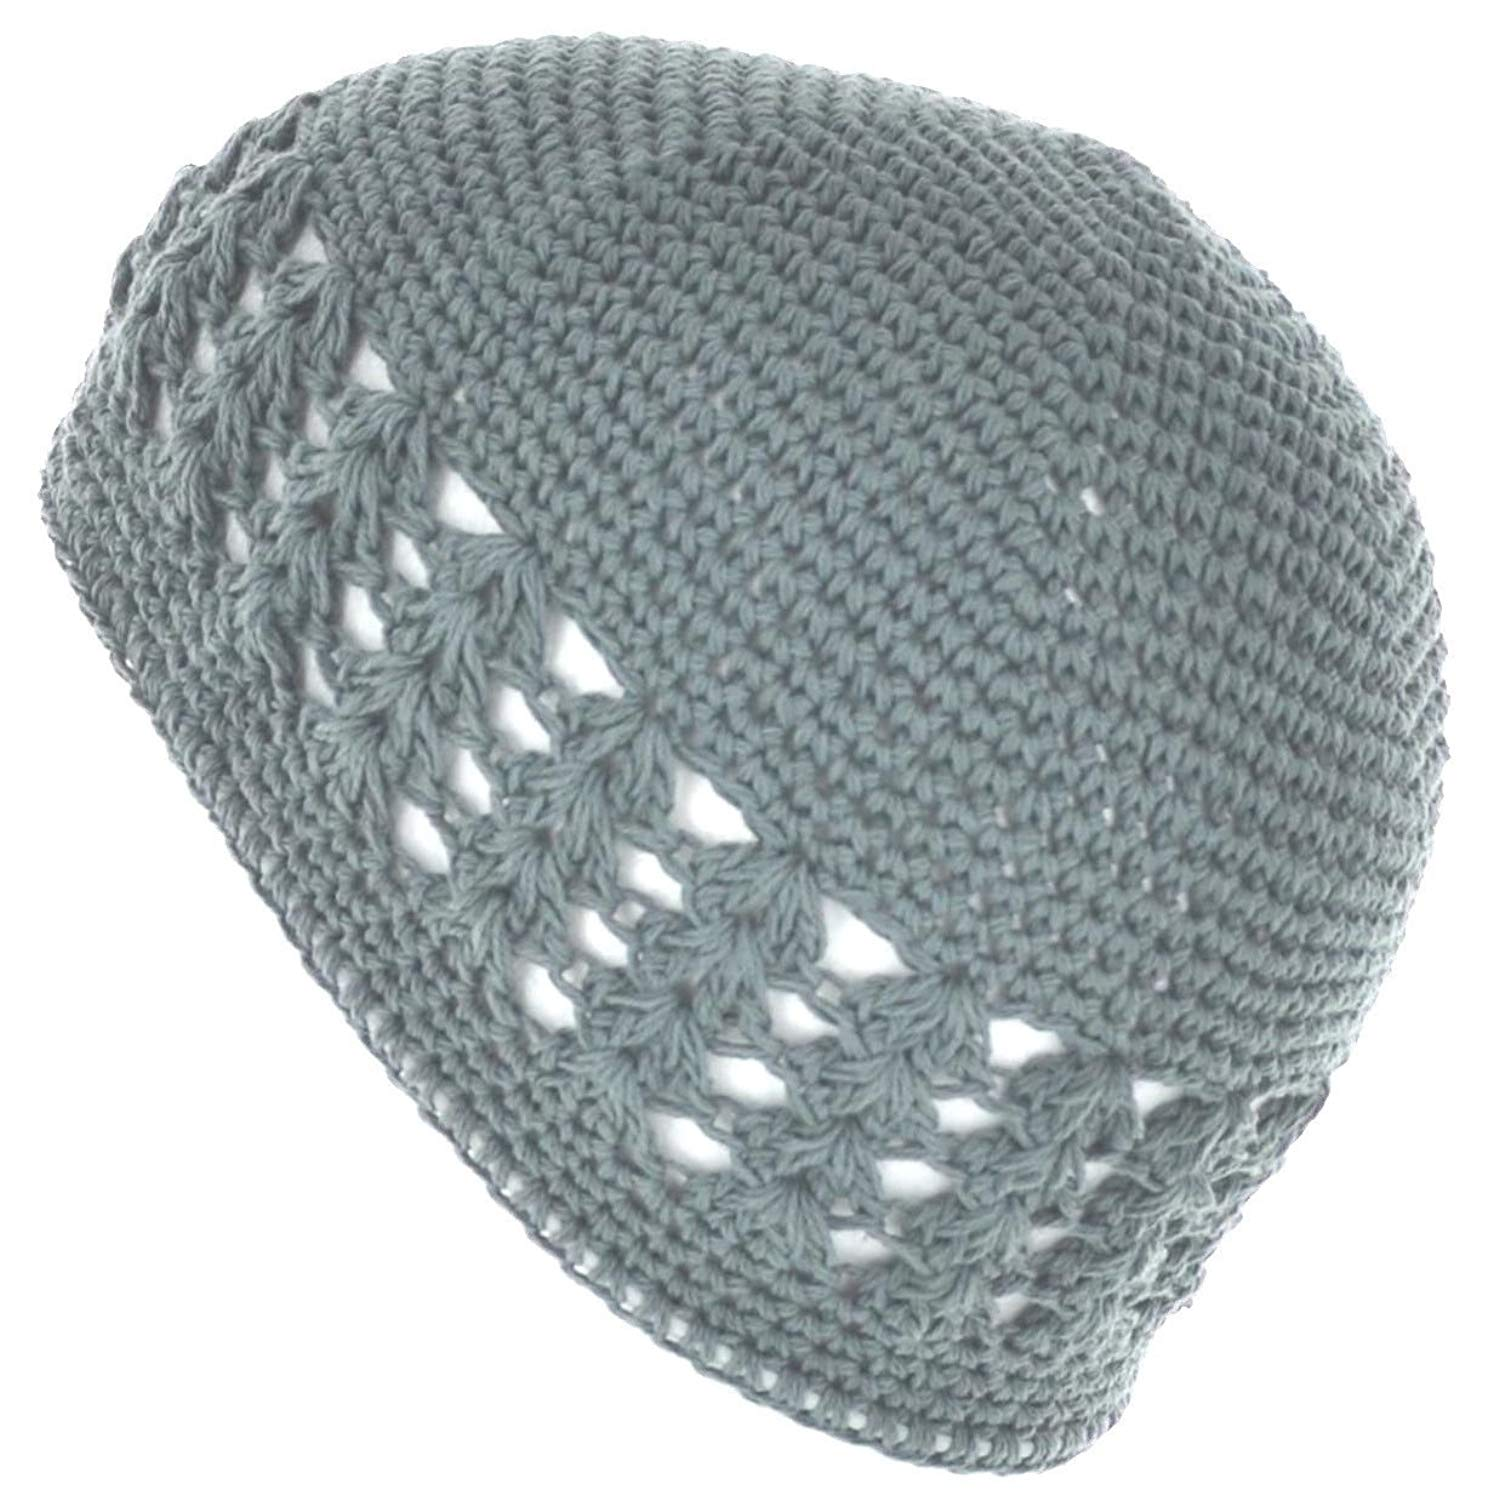 b8f1f2cafeb Get Quotations · LJL Design 100% Cotton Kufi Crochet Beanie Skull Cap Knit  Hat Brand New 19 Different